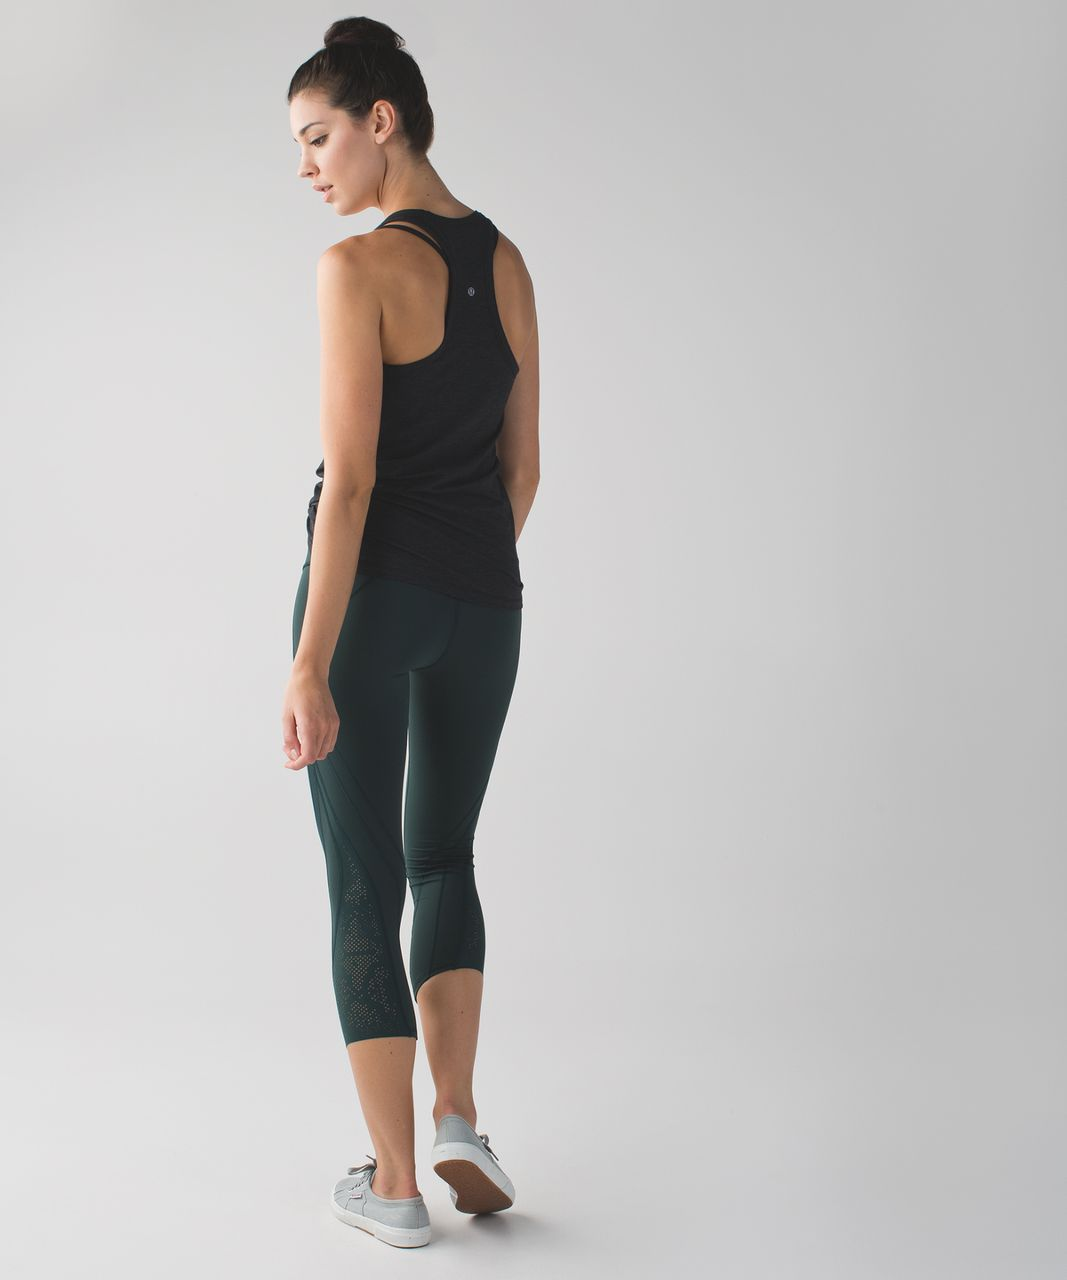 Lululemon Wunder Under Crop (Laser) *Full-On Luon - Dark Fuel